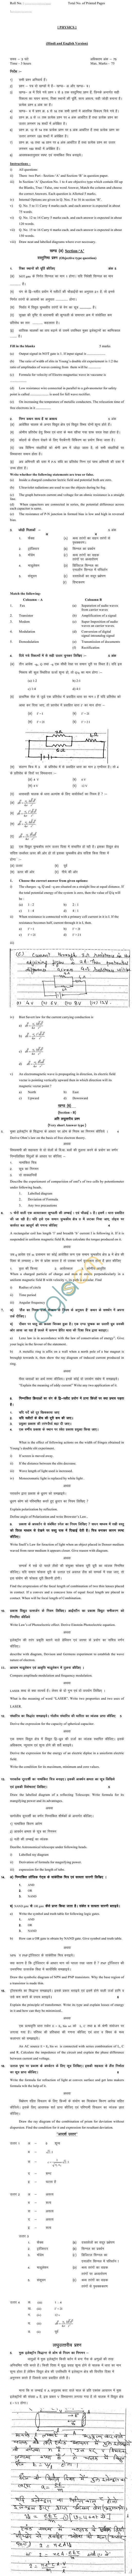 MP BoardClass XII Physics Model Questions & Answers -Set 2